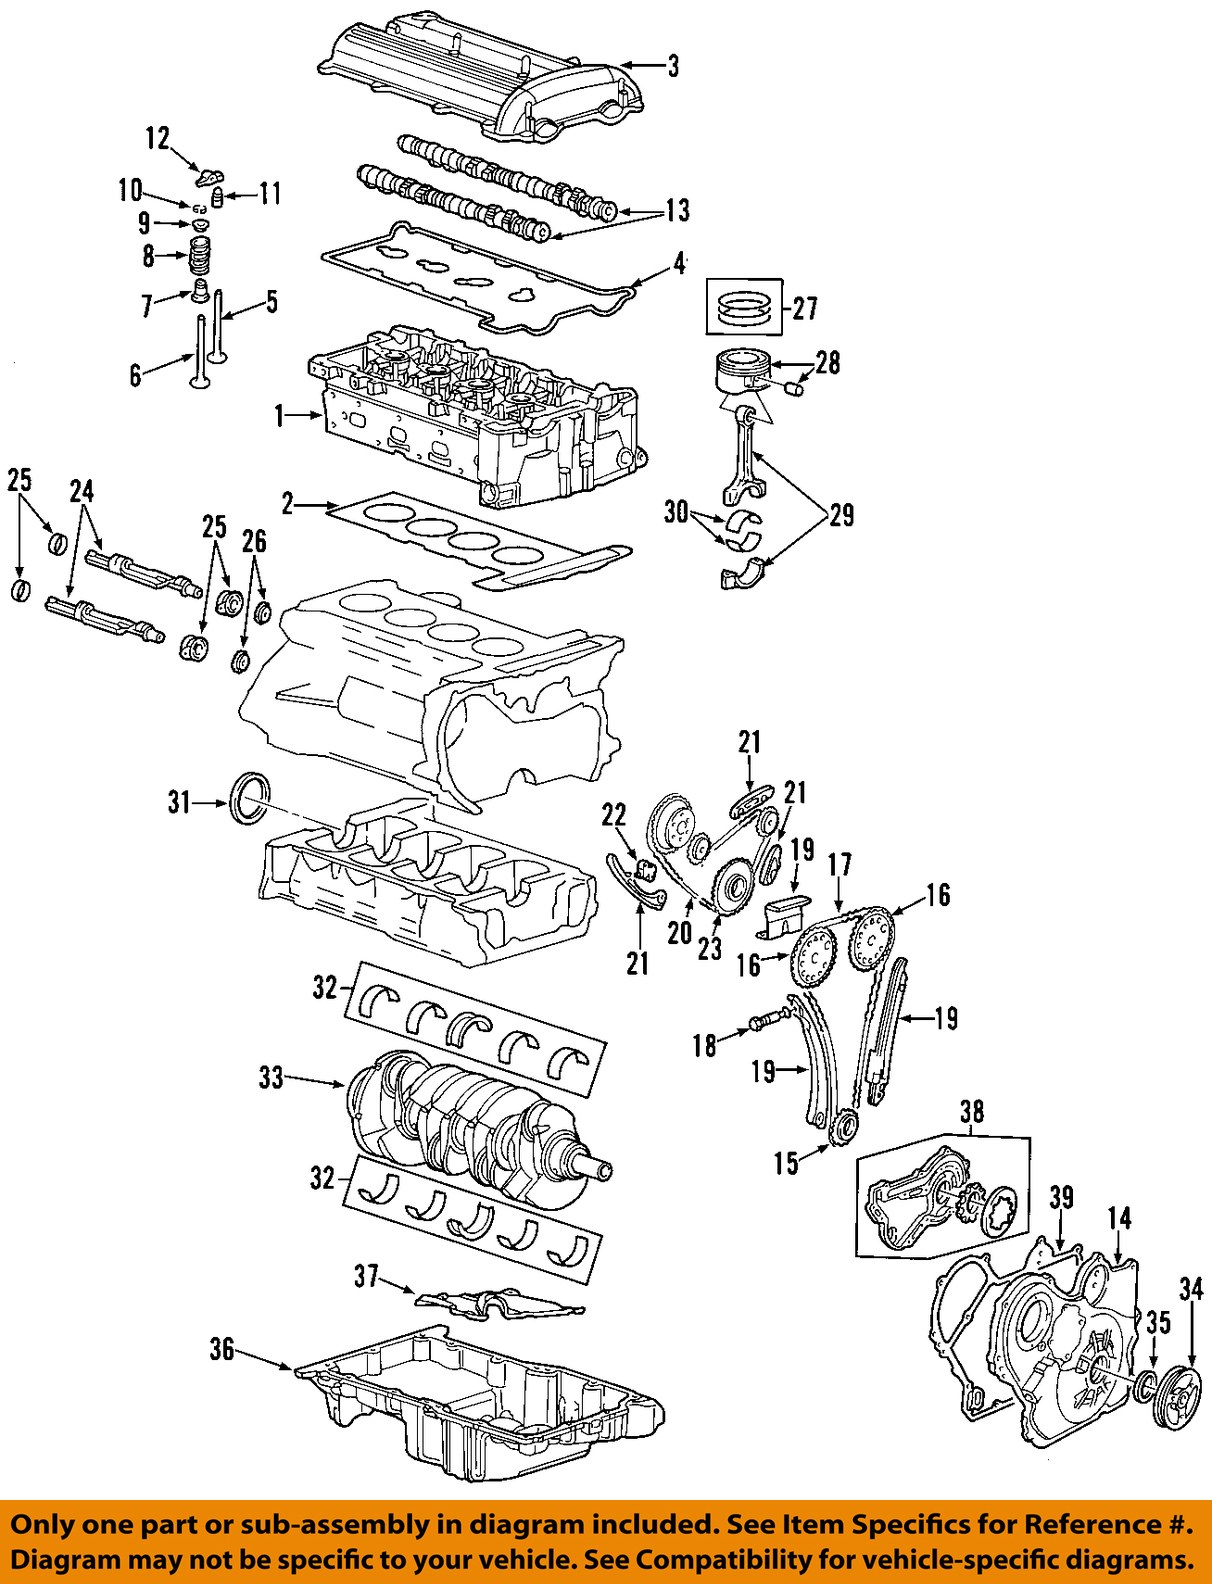 hight resolution of 2005 saturn ion 2 2 engine diagram wiring diagram mega 2006 saturn ion 2 2 engine